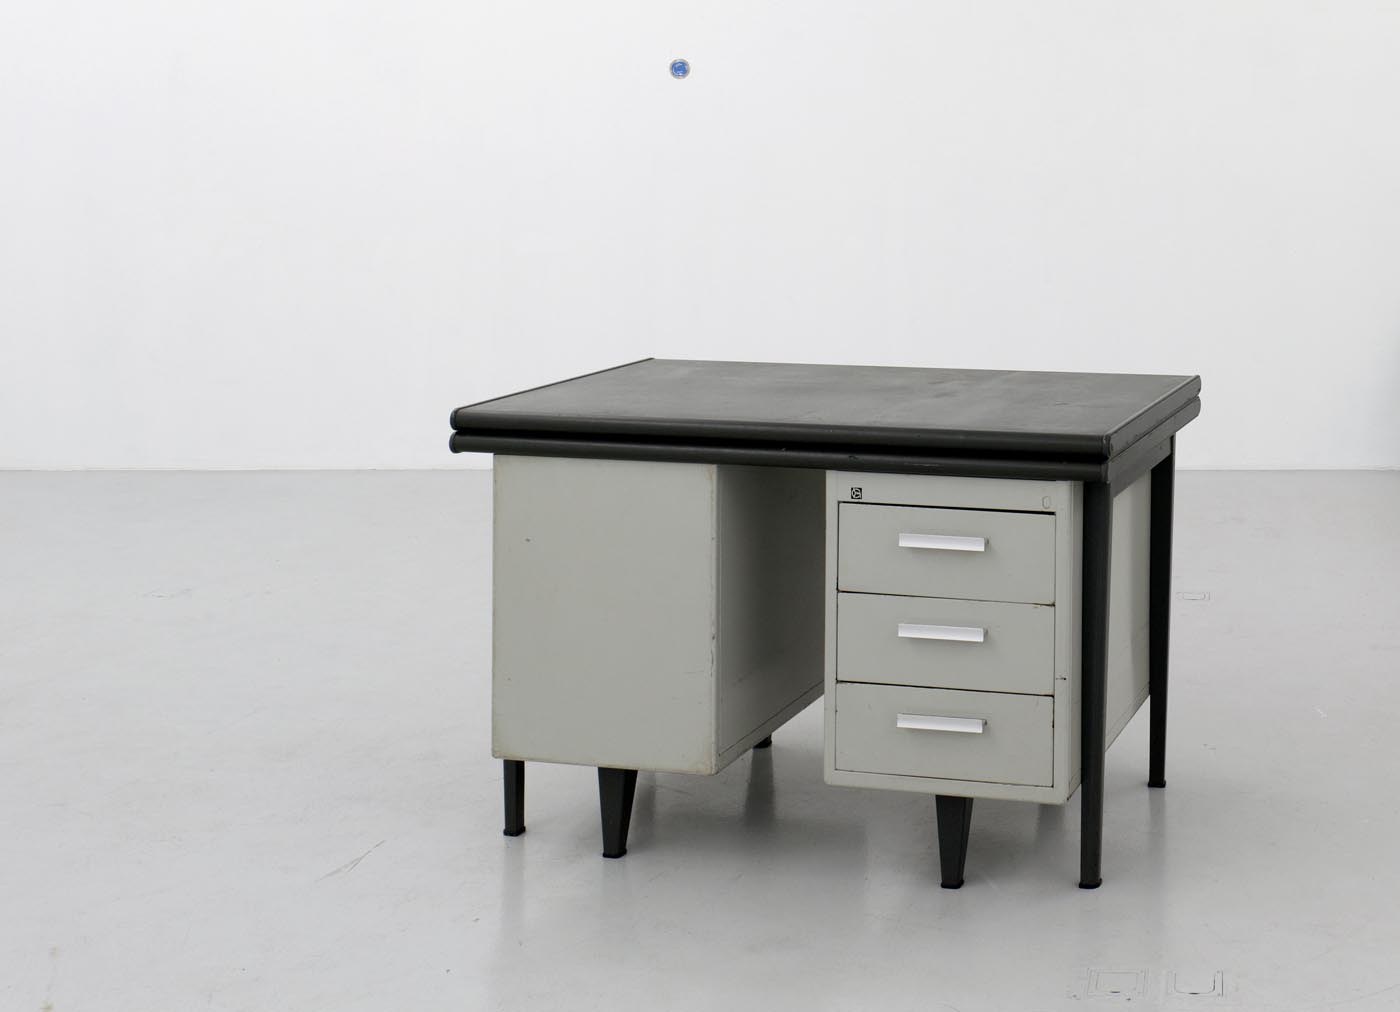 <i>Lessened space</i>, 2010, two telescoped office desks, collection Bonnefantenmuseum, Maastricht NL